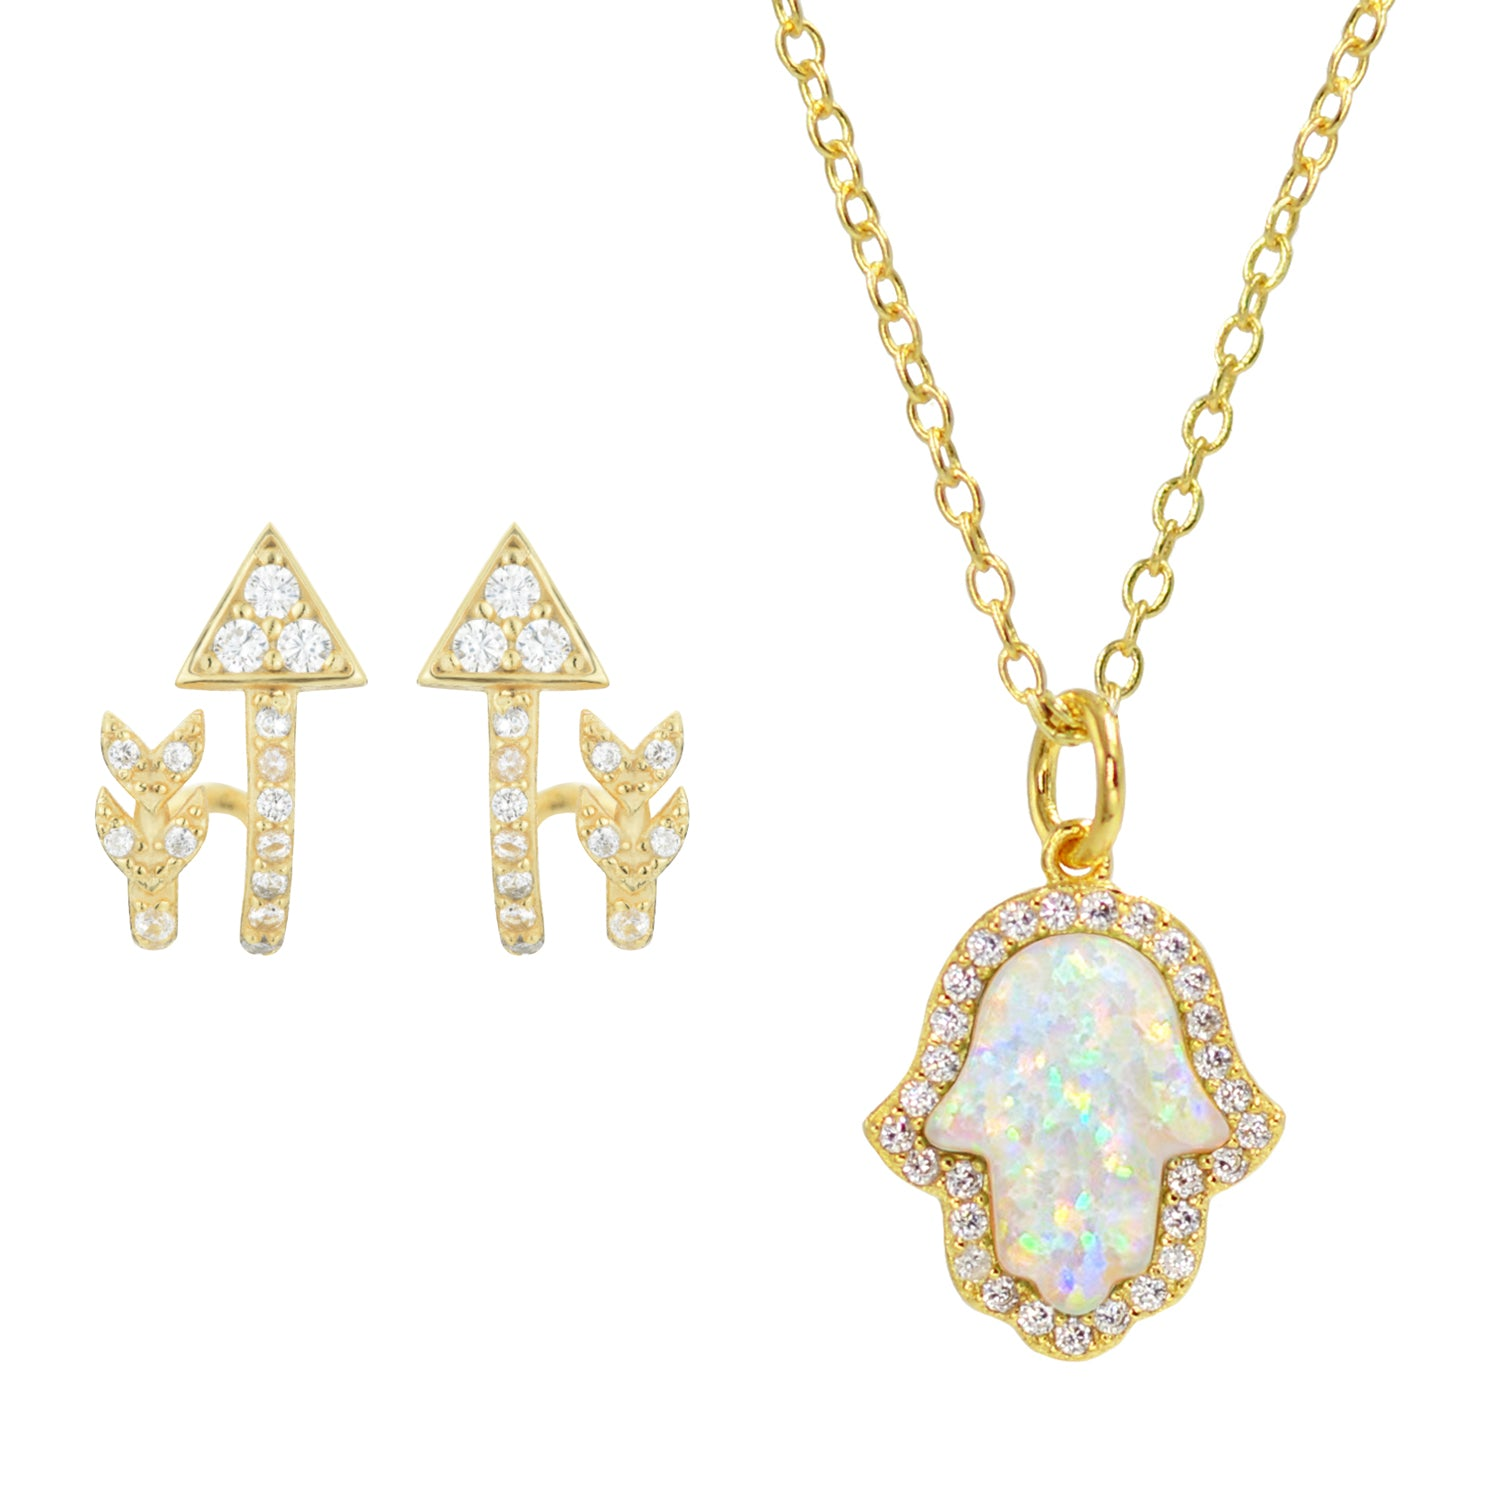 Gift Set | Opal Hamsa Necklace + Arrow Huggie Earrings